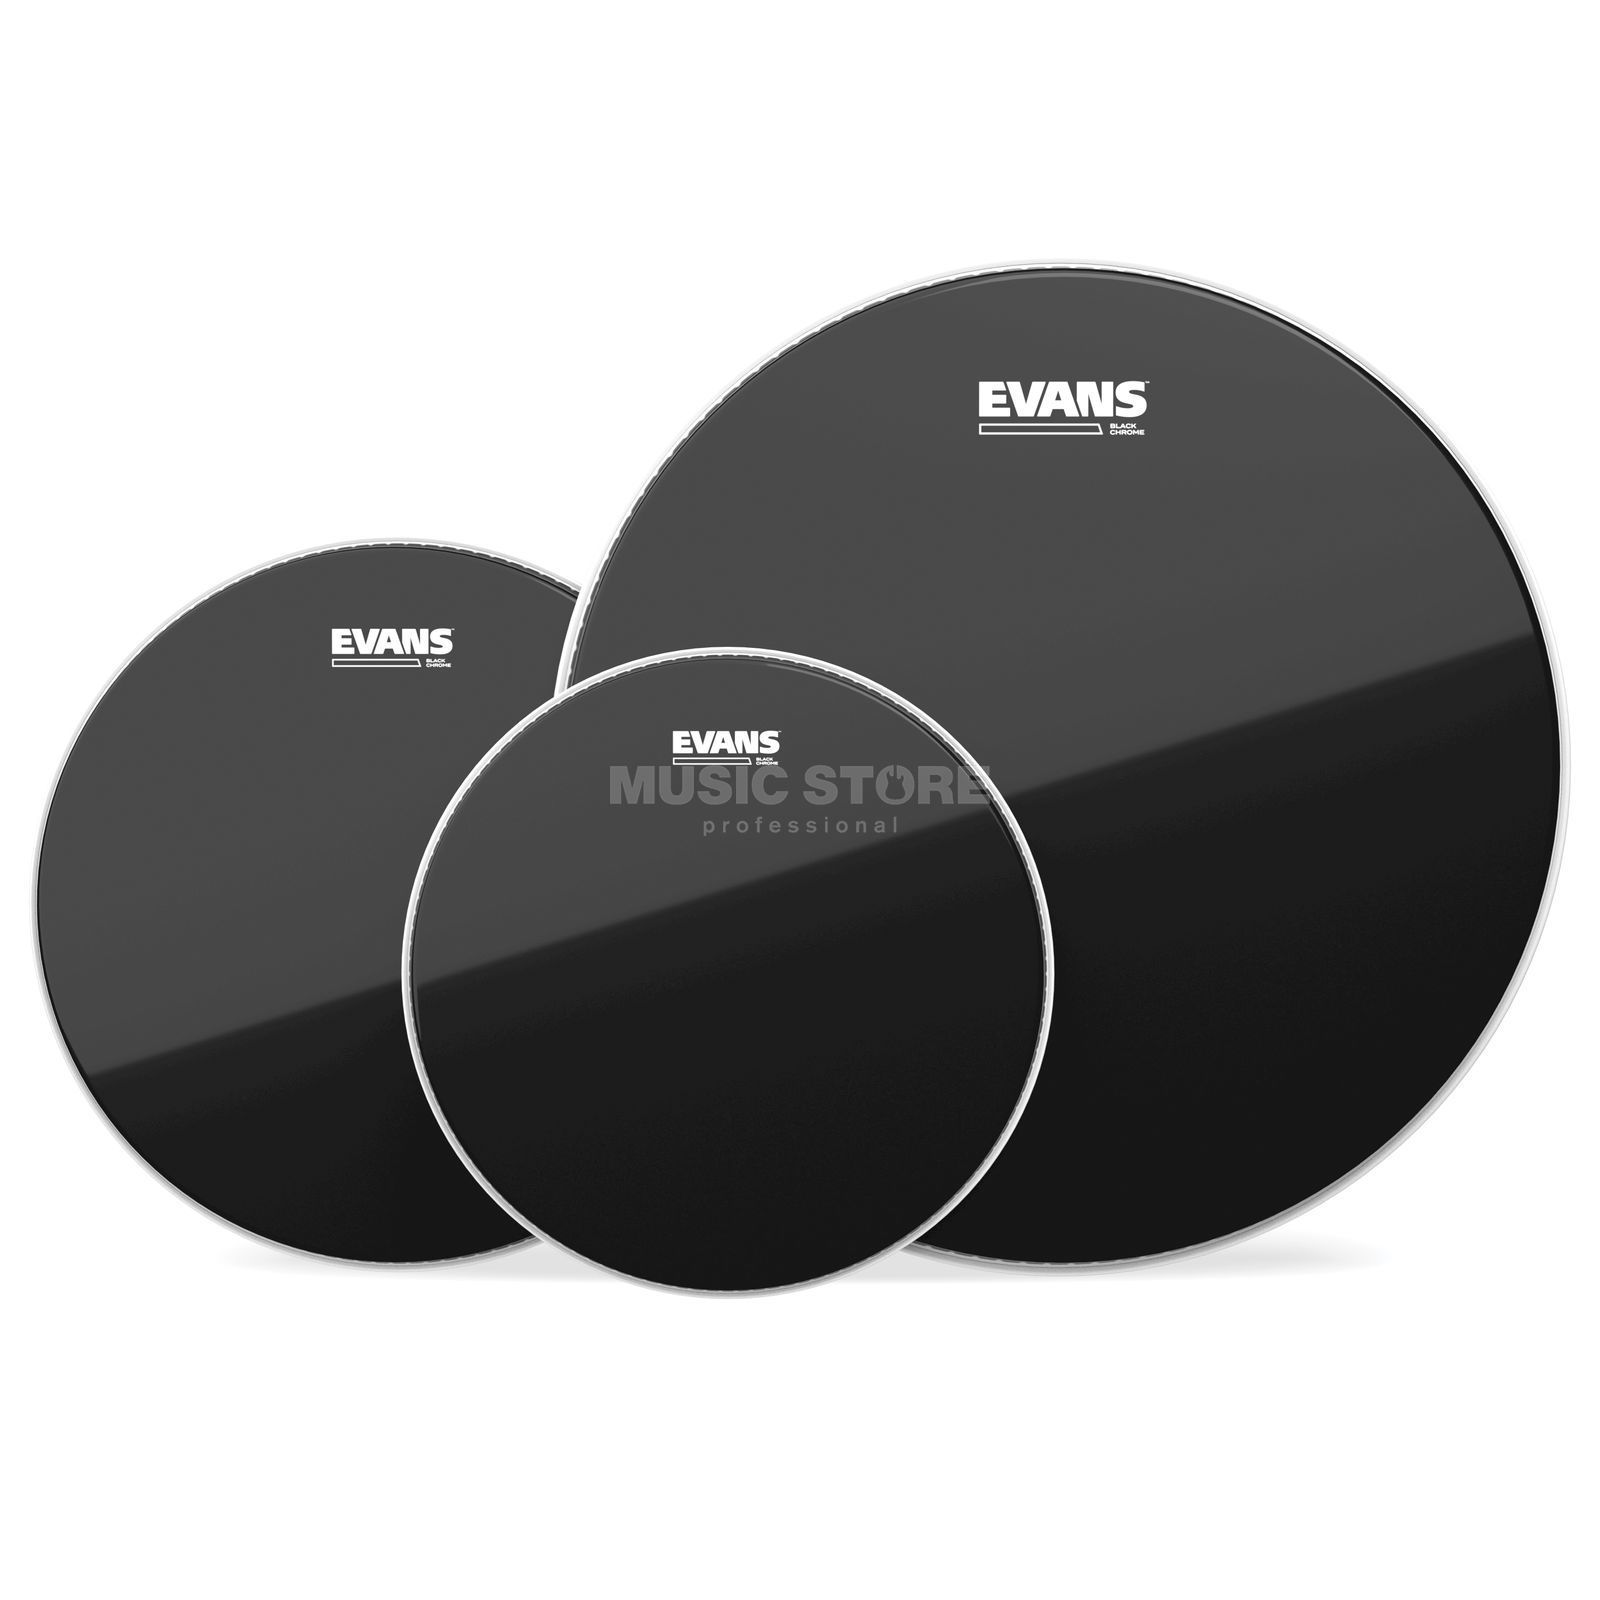 "Evans Drum Head Pack Black Chrome Standard, 12"", 13"", 16"" Produktbillede"